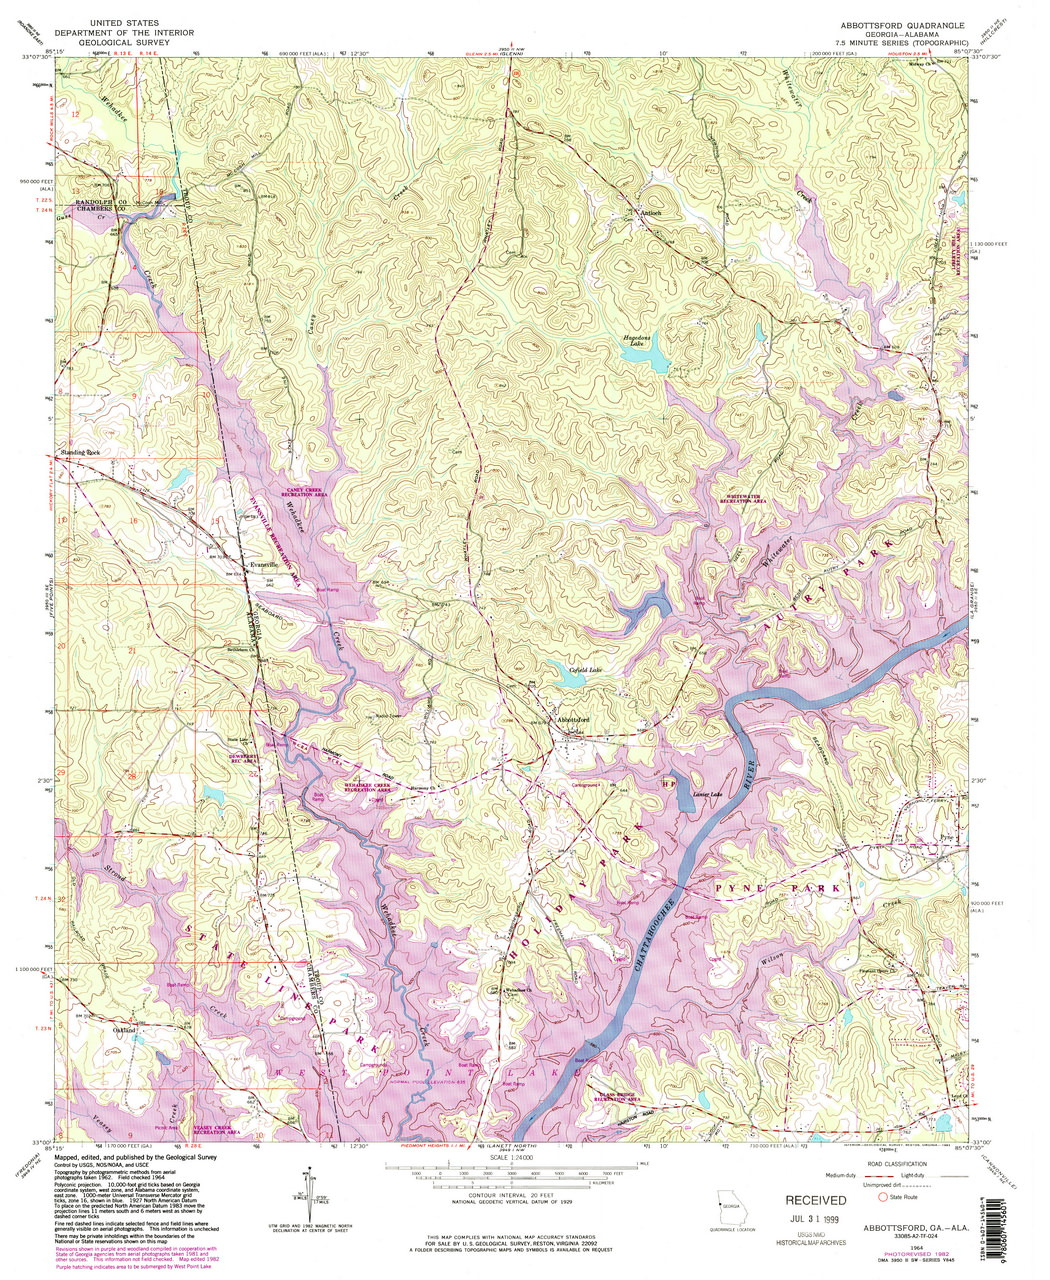 Usgs Topo Map Rebuilds For Print For Georgia - Album On Imgur - Usgs Printable Maps